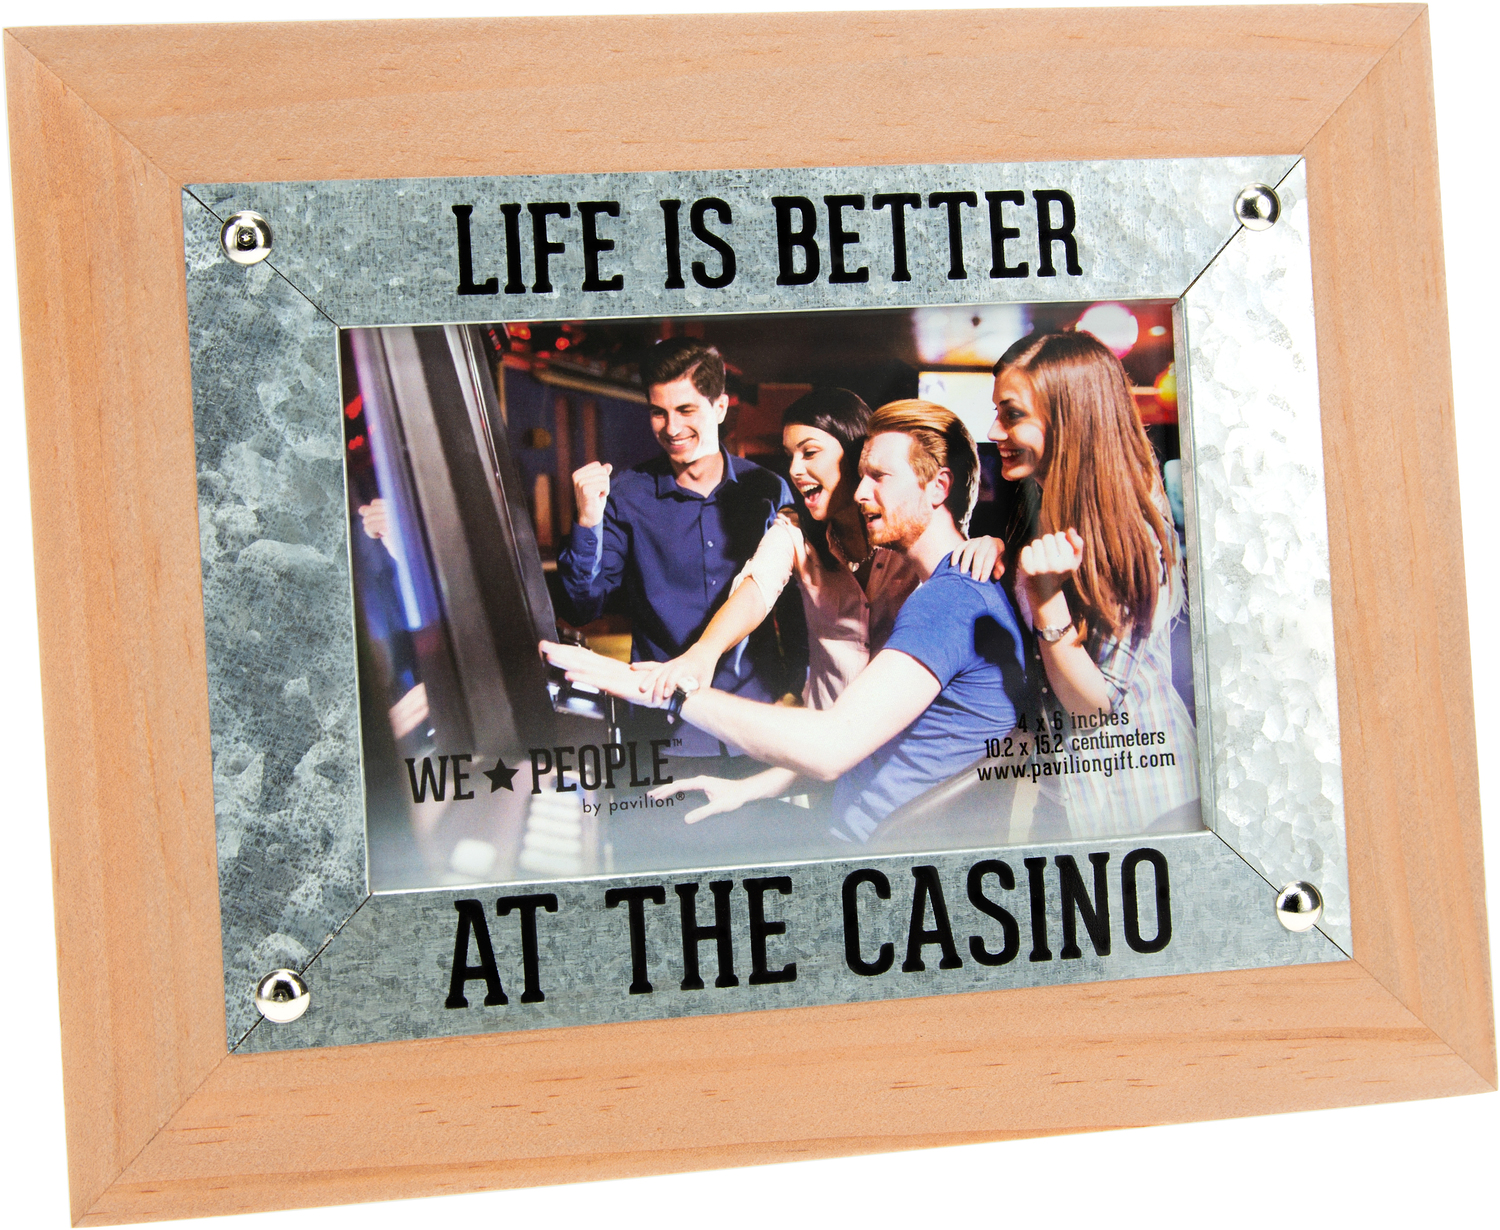 "Casino People by We People - Casino People - 9.5"" x 7.5"" Frame (Holds 6"" x 4"" Photo)"